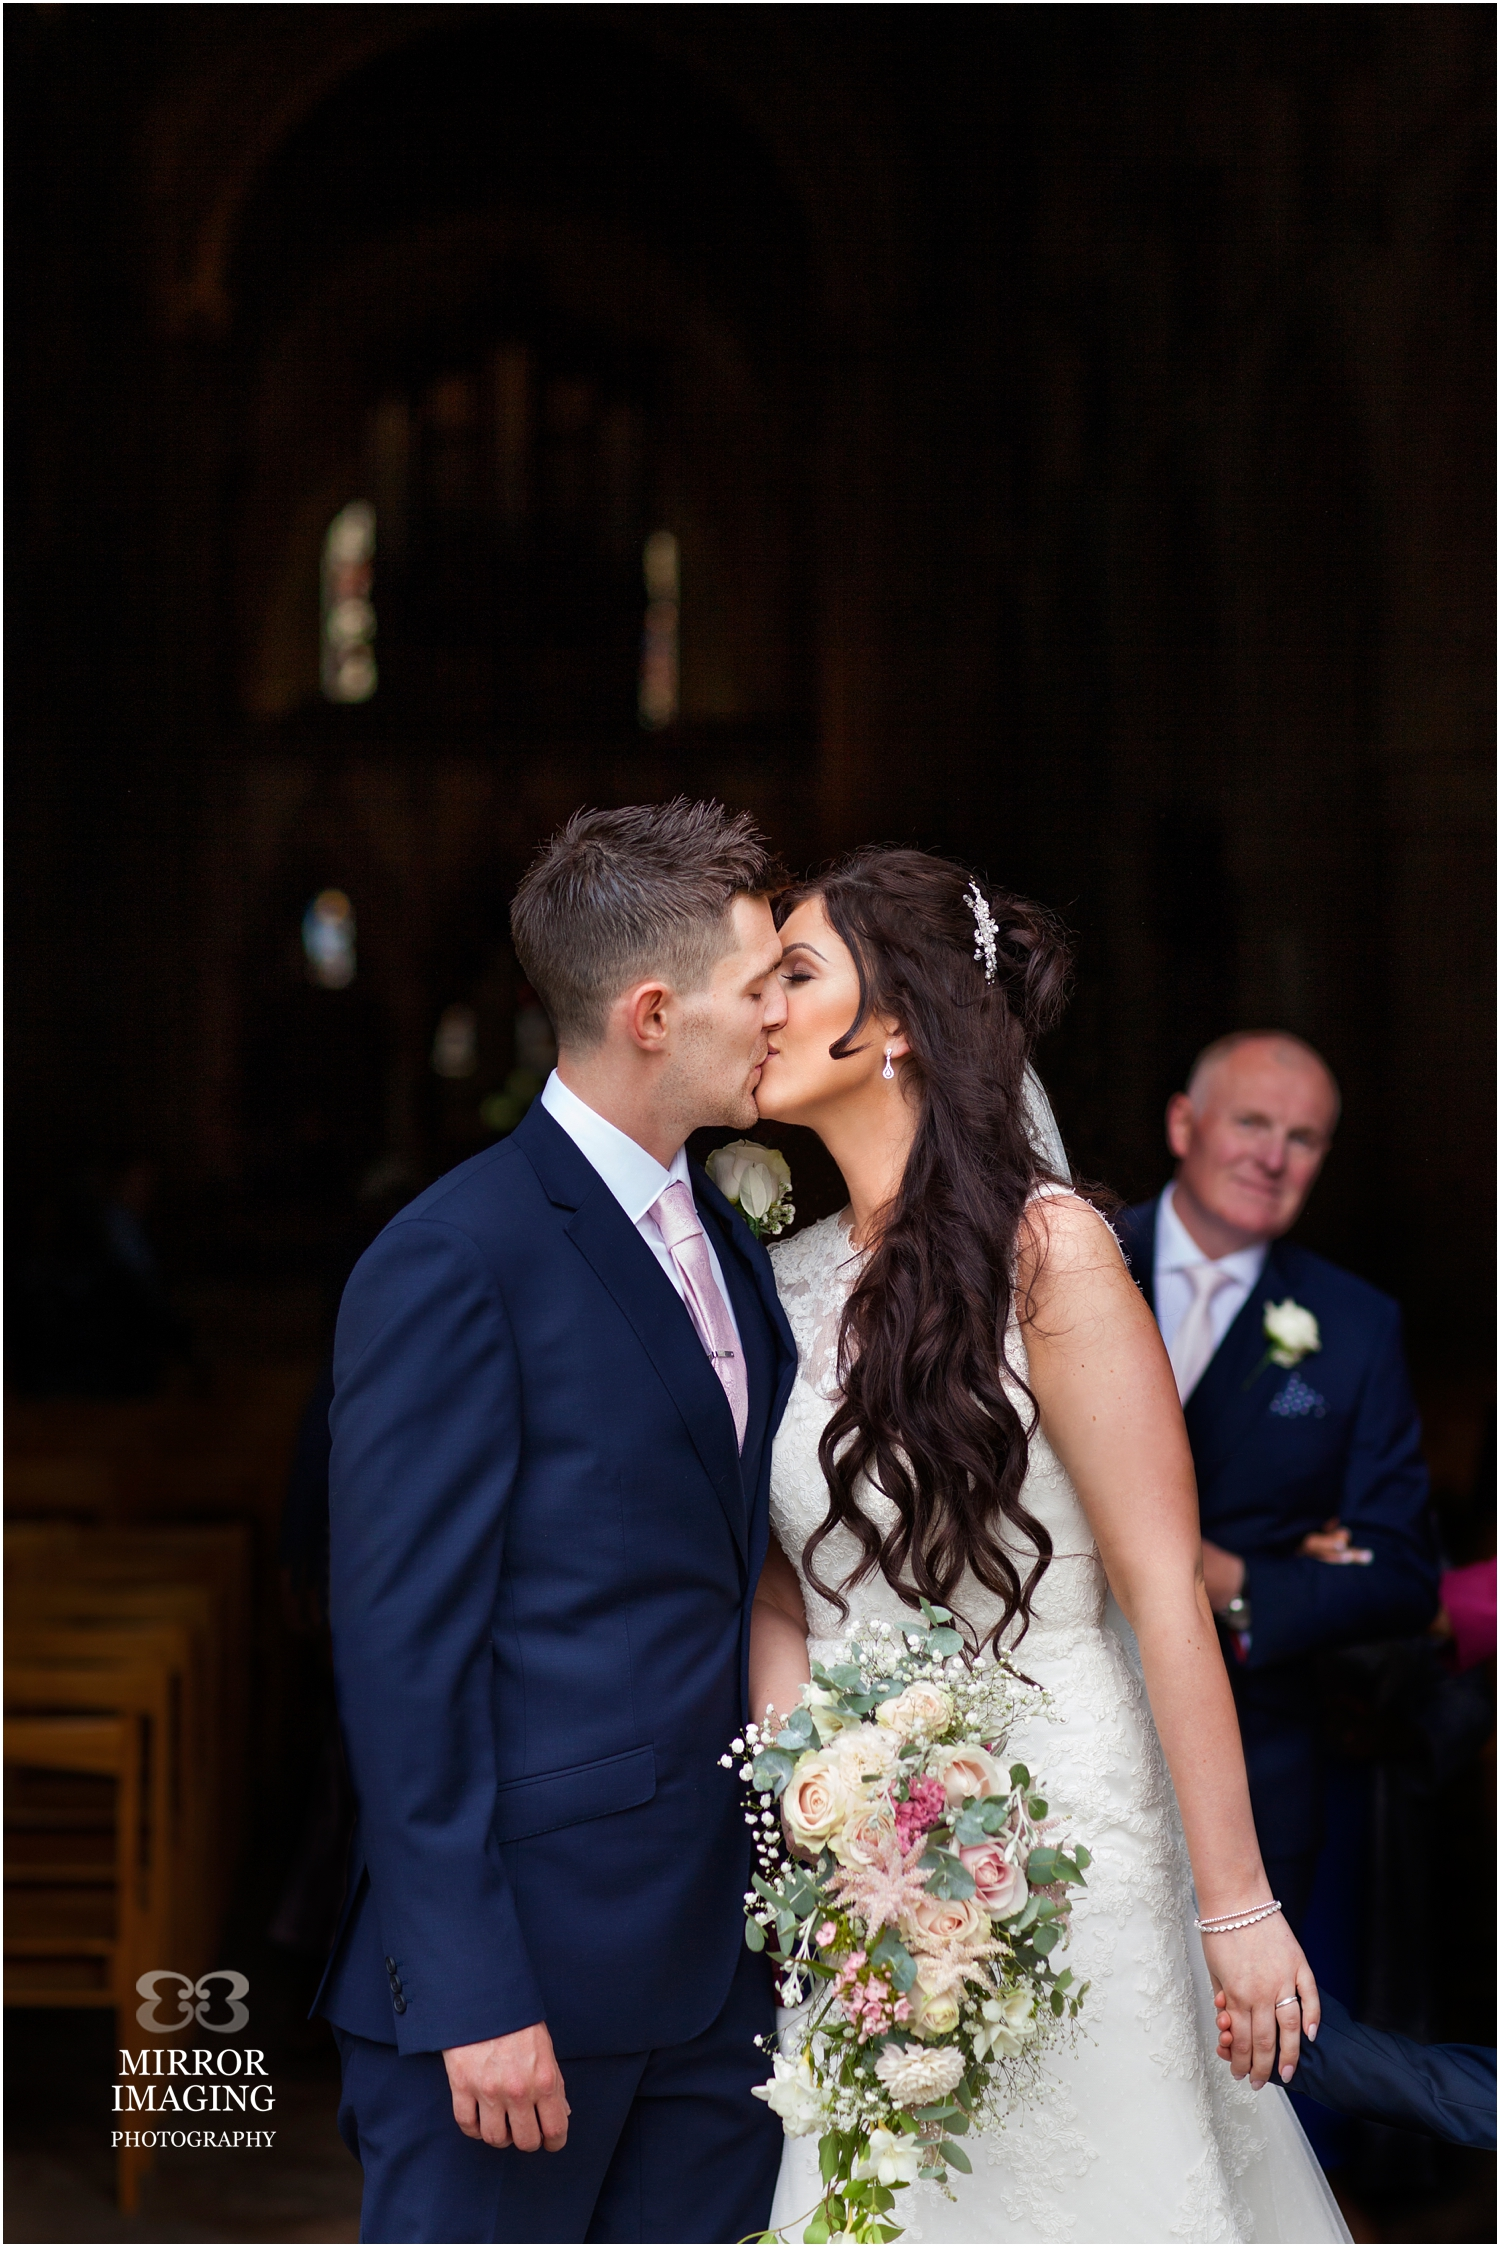 wedding_photographers_nottingham_0030.jpg